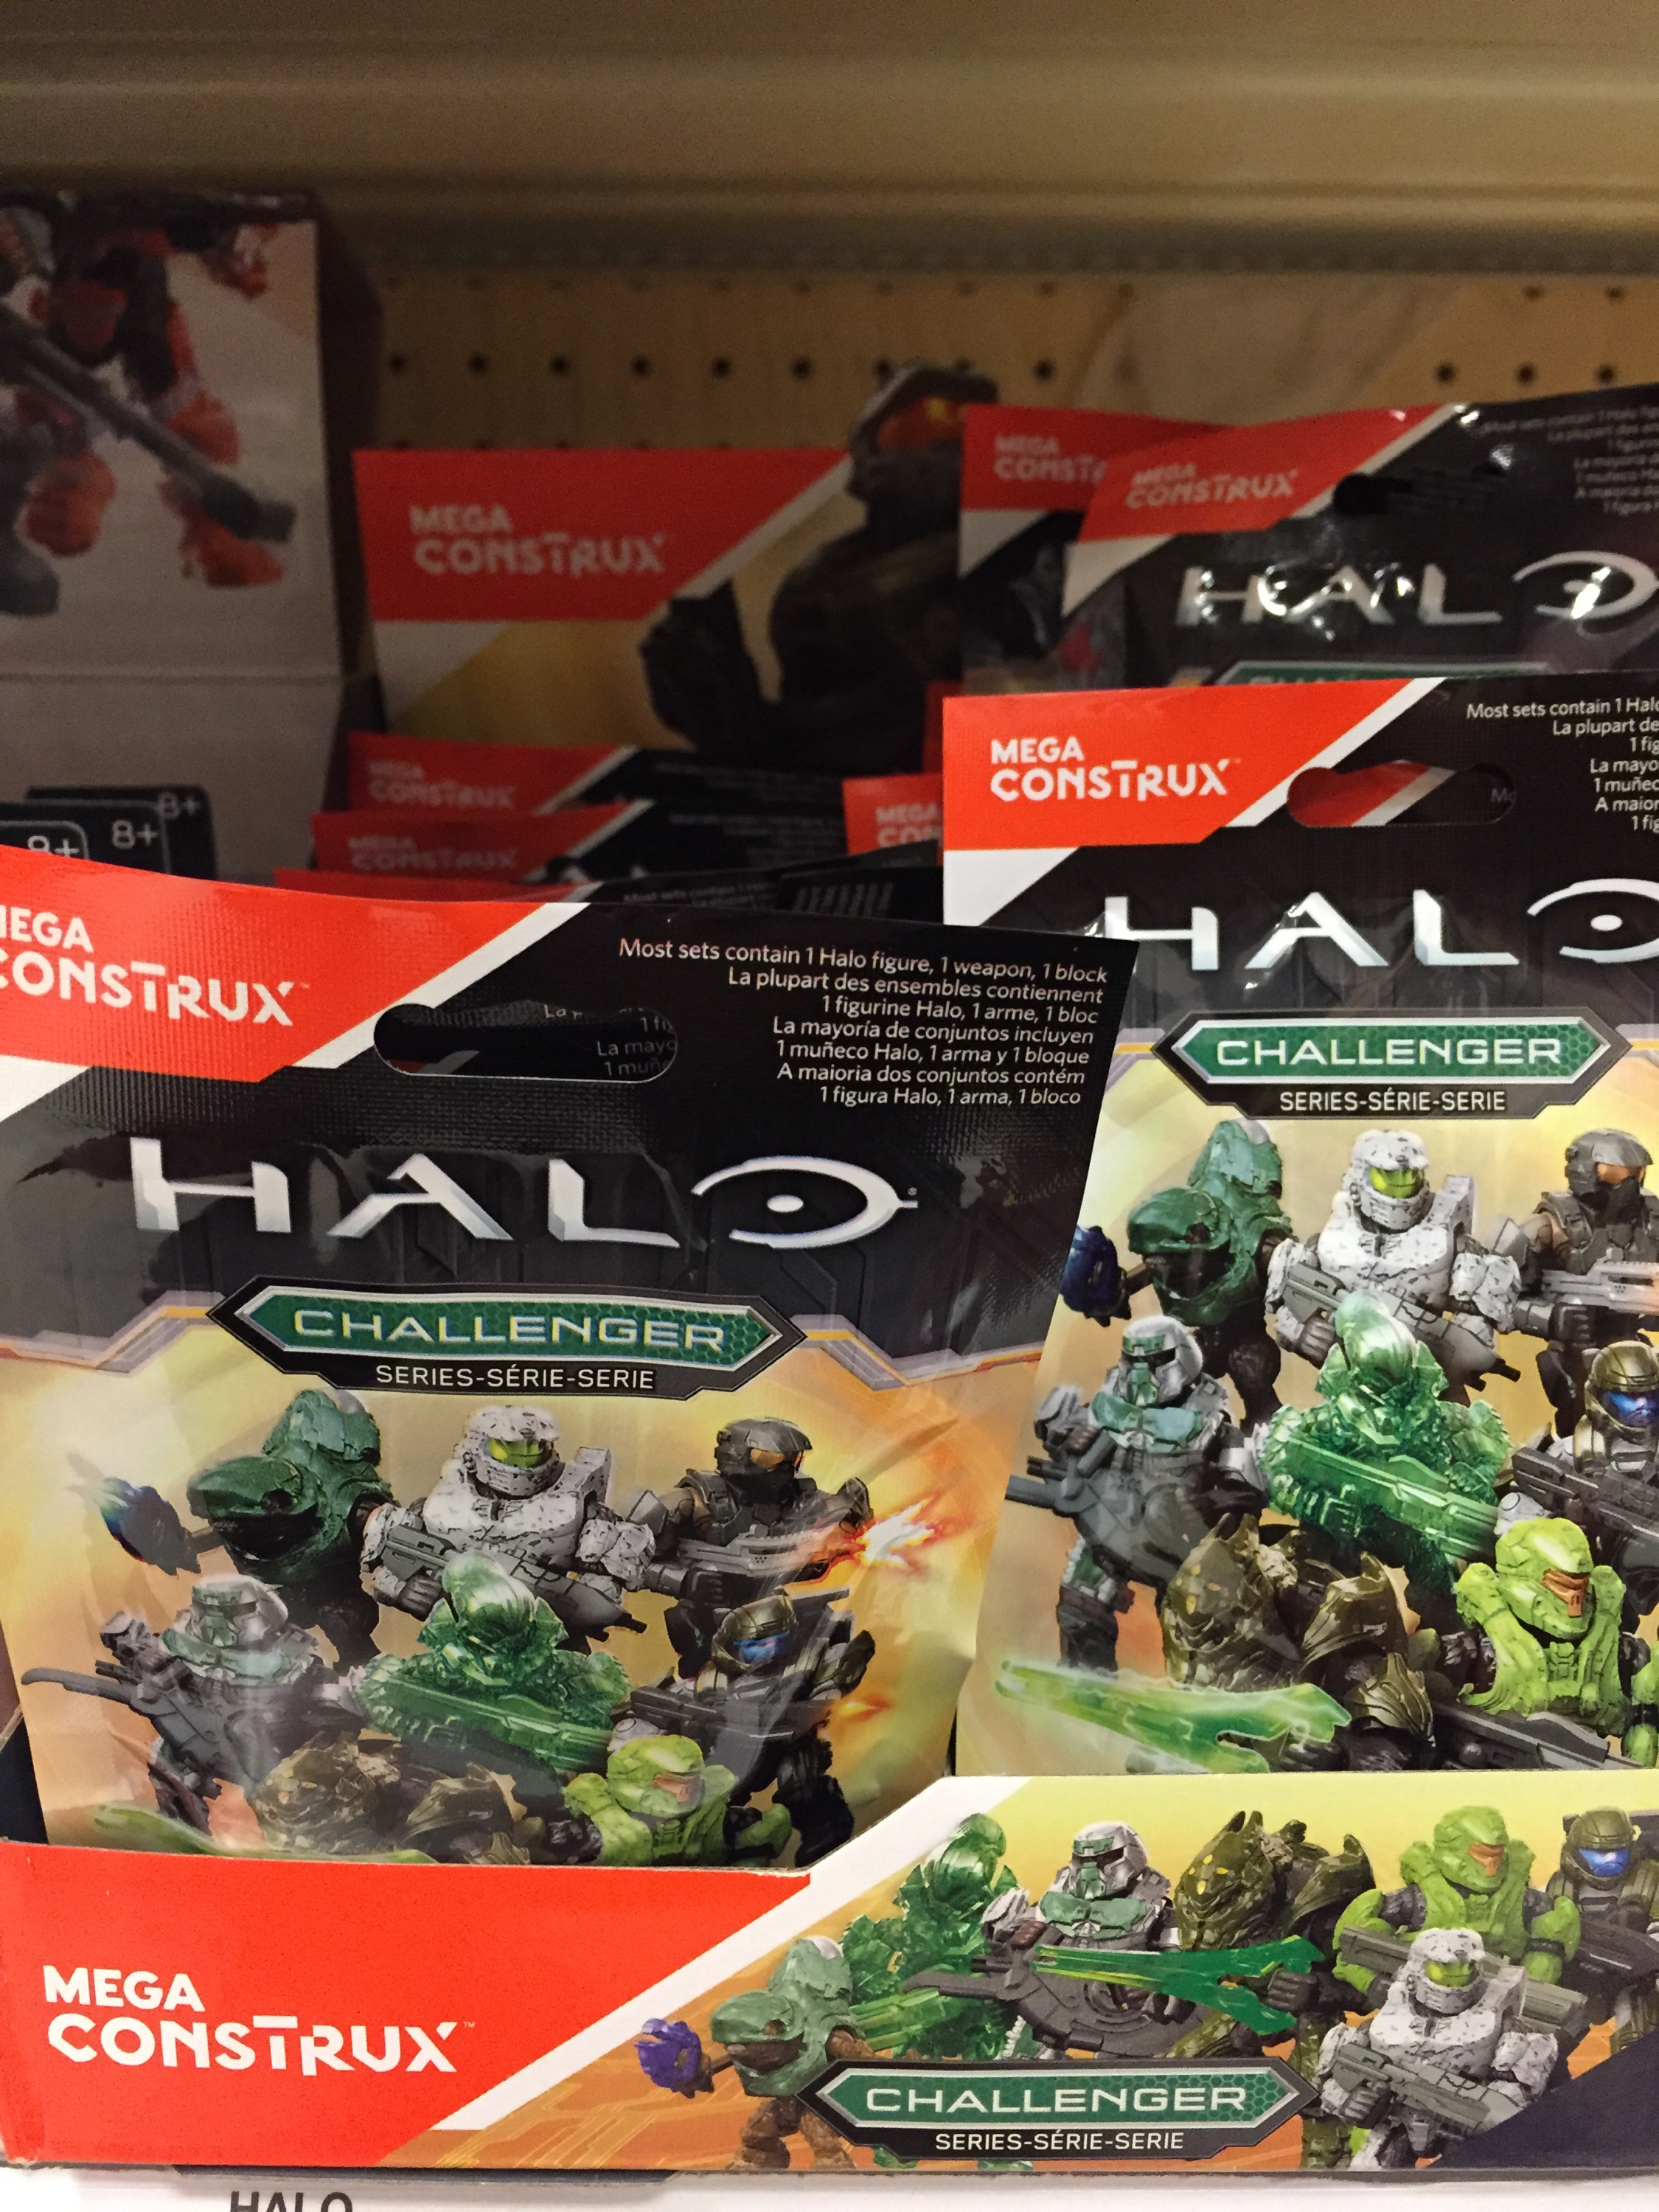 CODE NUMBER LIST: Halo Mega Construx Challenger Series Codes